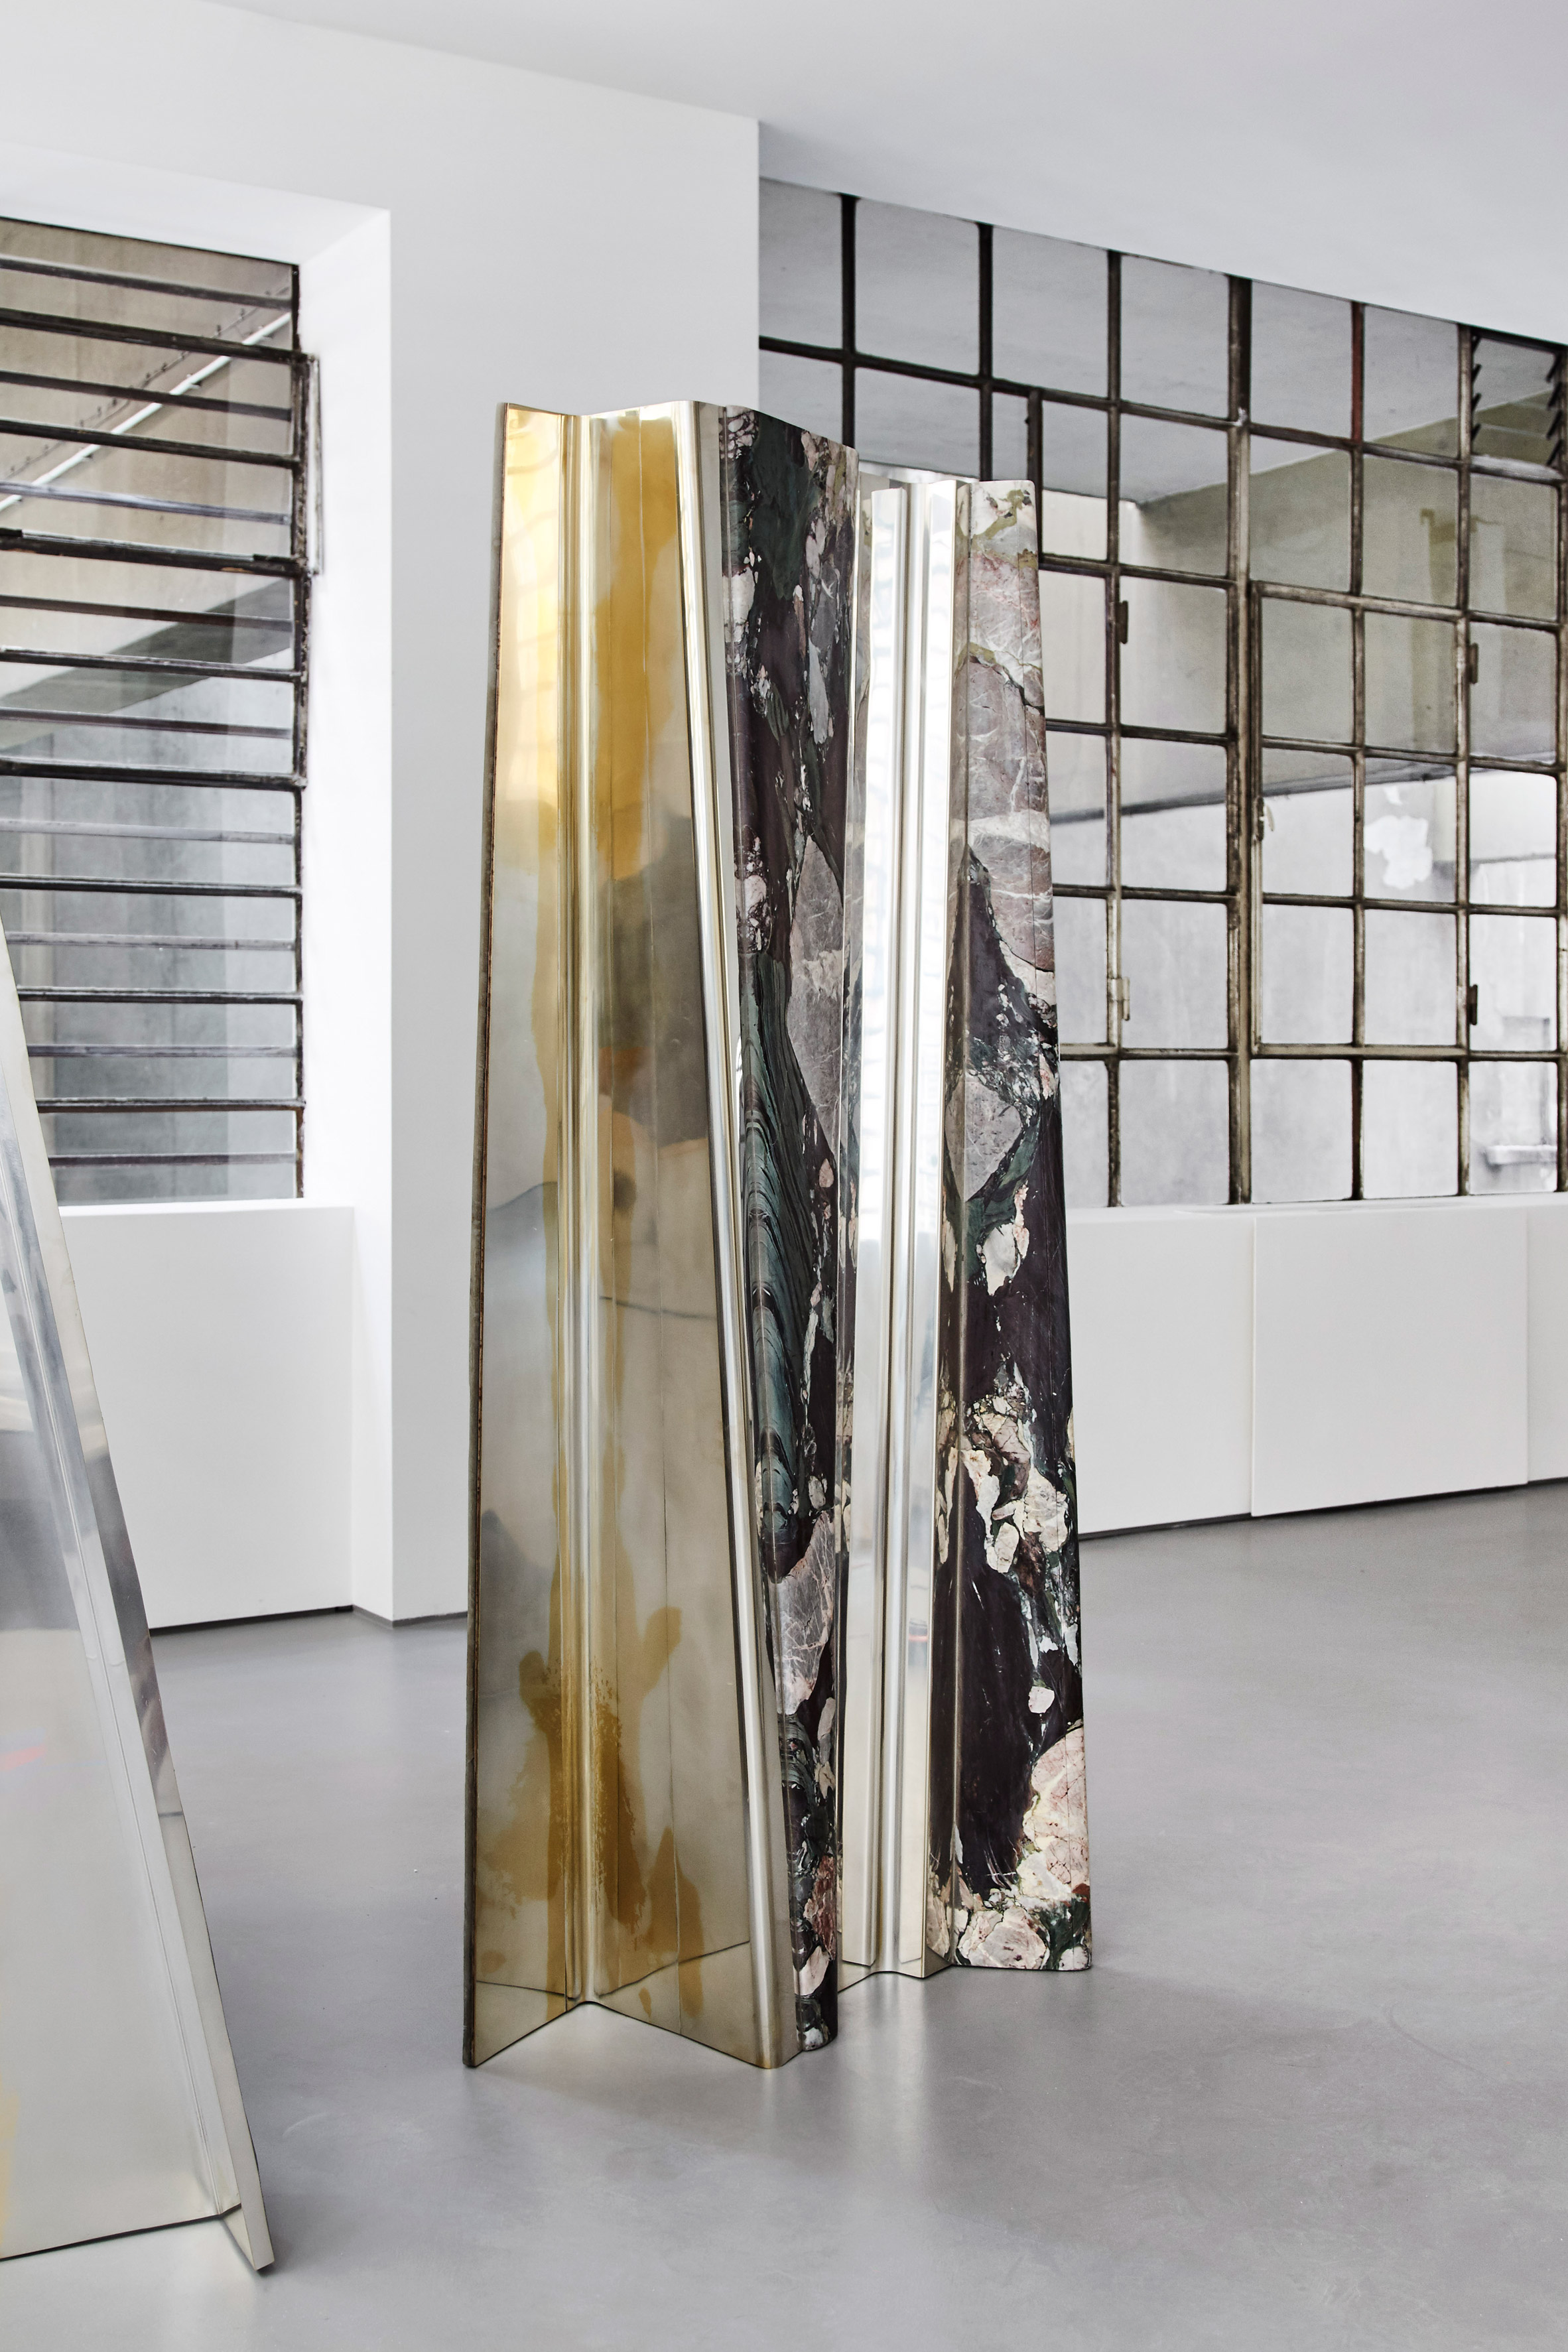 glass form furniture baroquisme by vincenzo de cotiis pools of metal and glass form cotiis